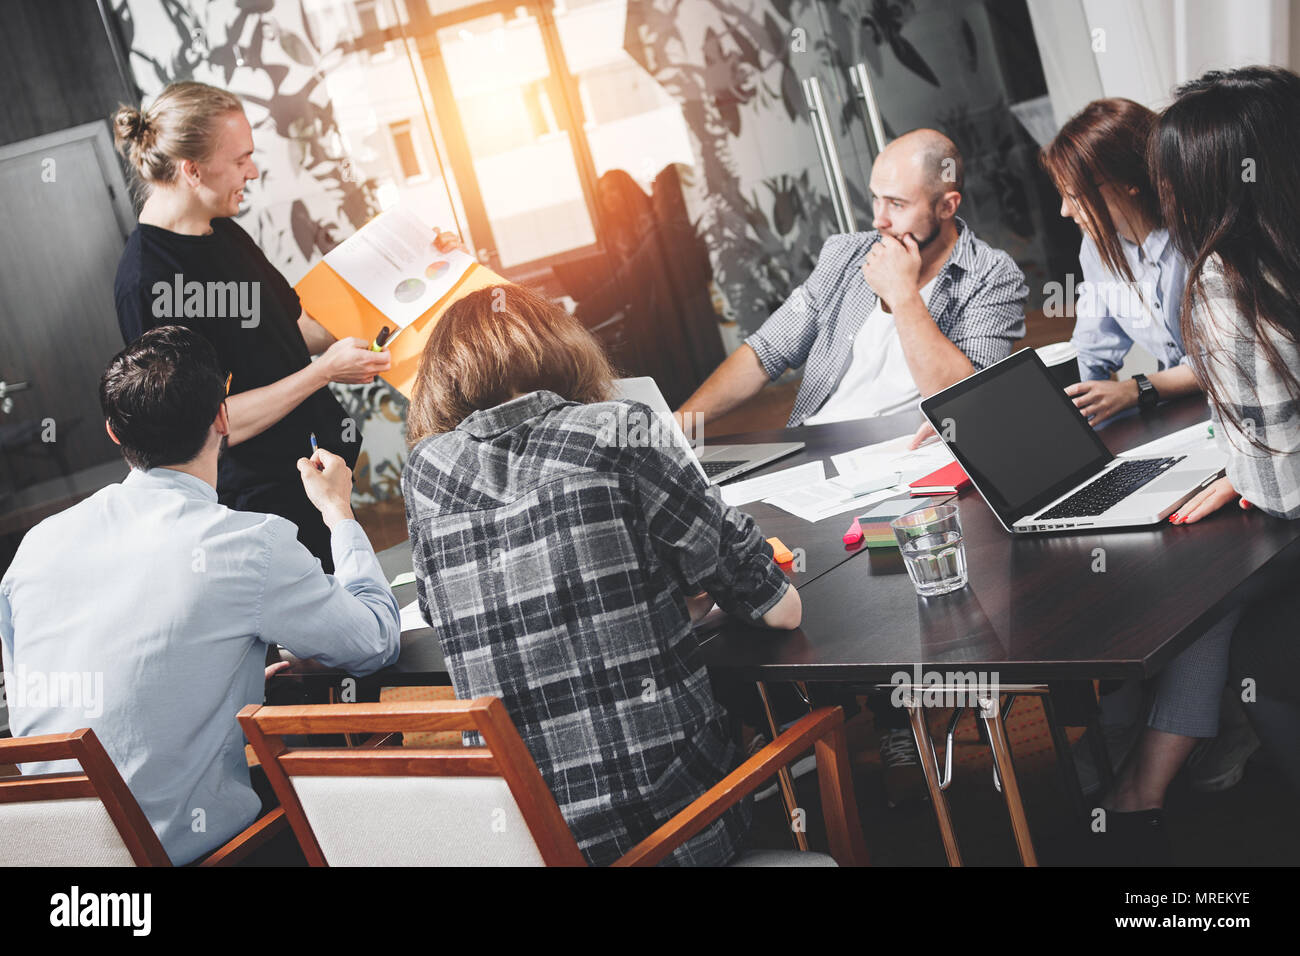 Six people working in loft space. Coworking startup meeting. Teamwork and brainstorming. Intentional little lens flares - Stock Image